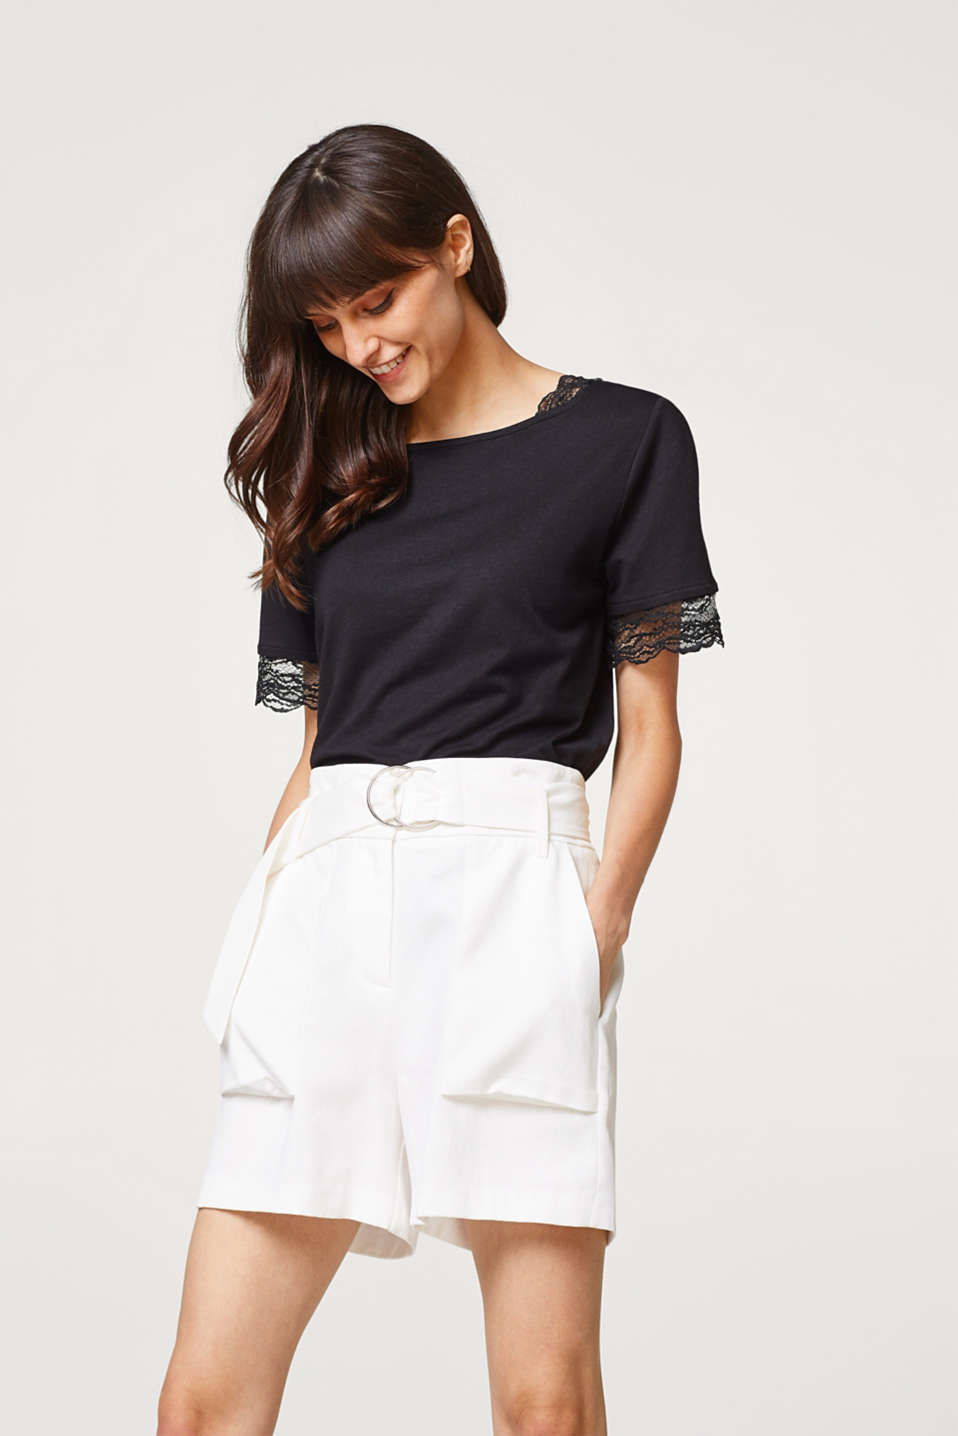 Esprit - T-shirt in a mix of materials with lace details